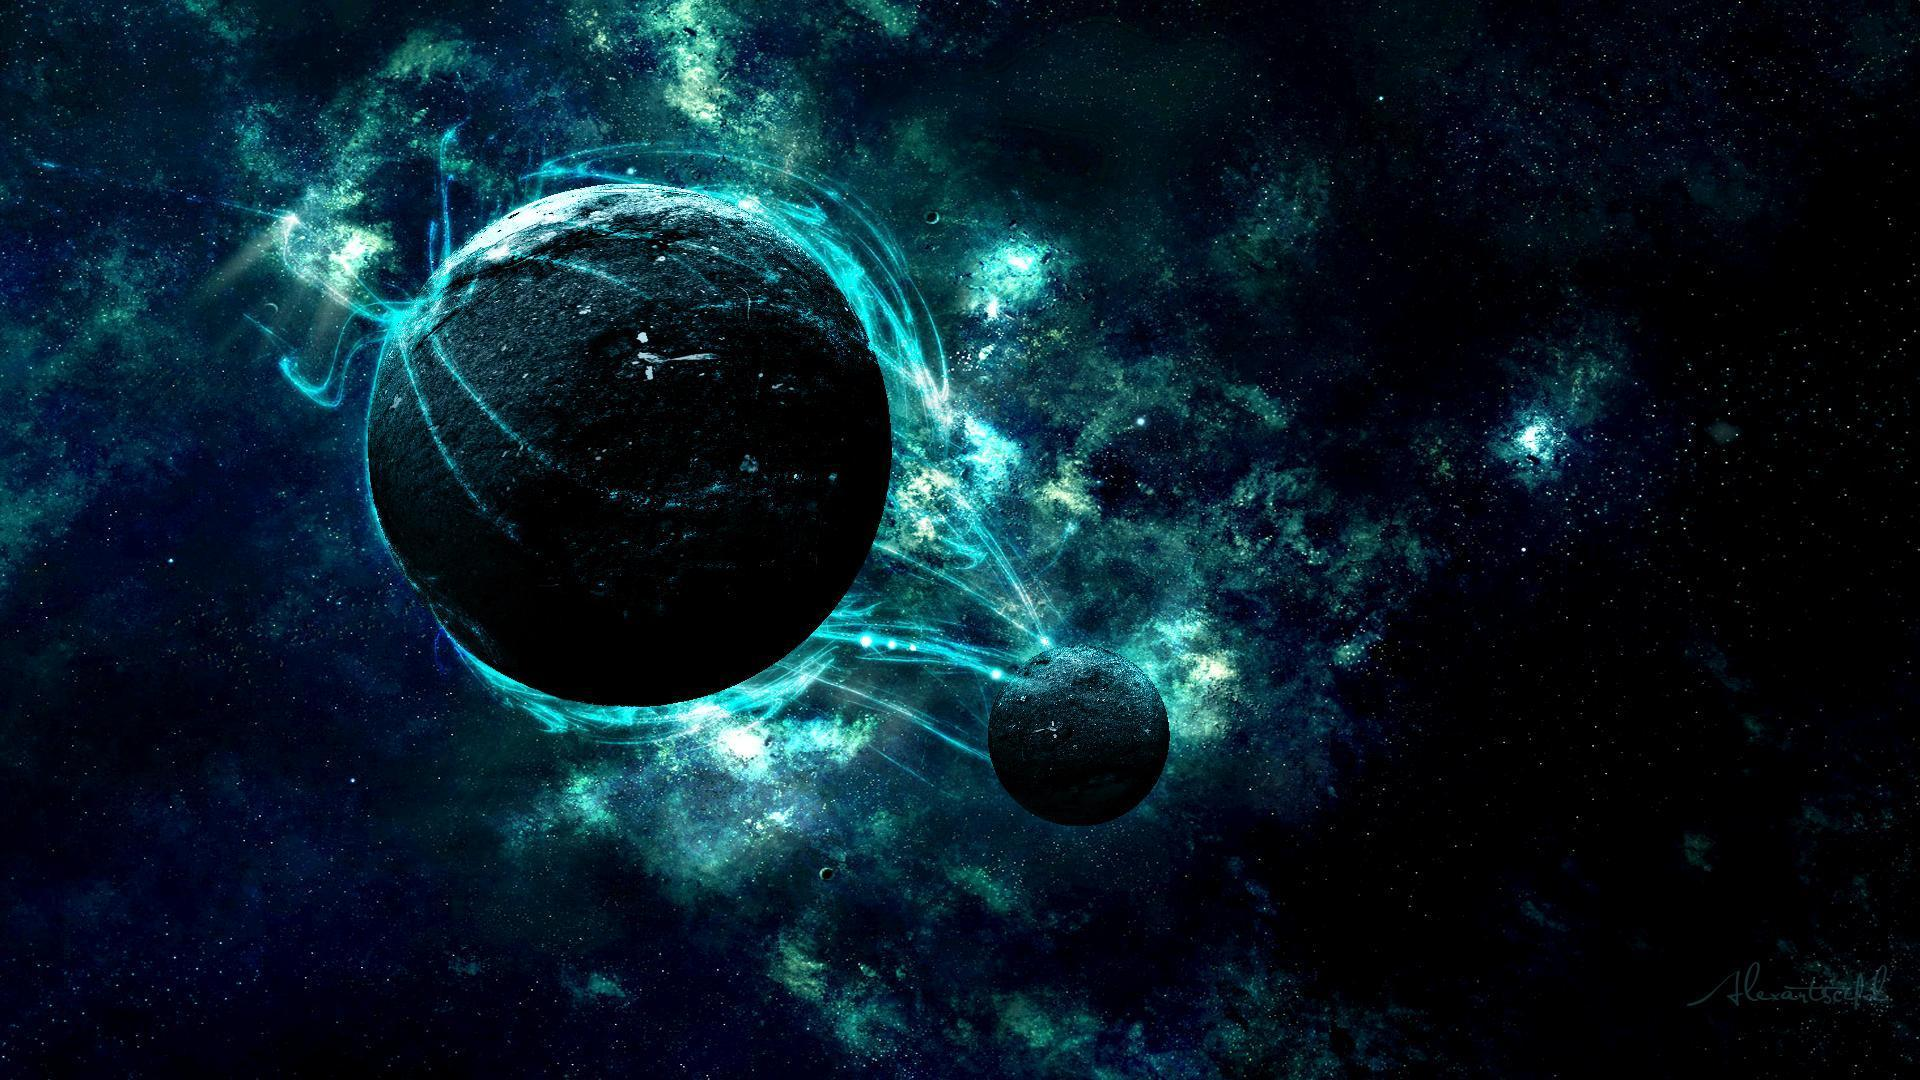 3d planets wallpaper hd - photo #20